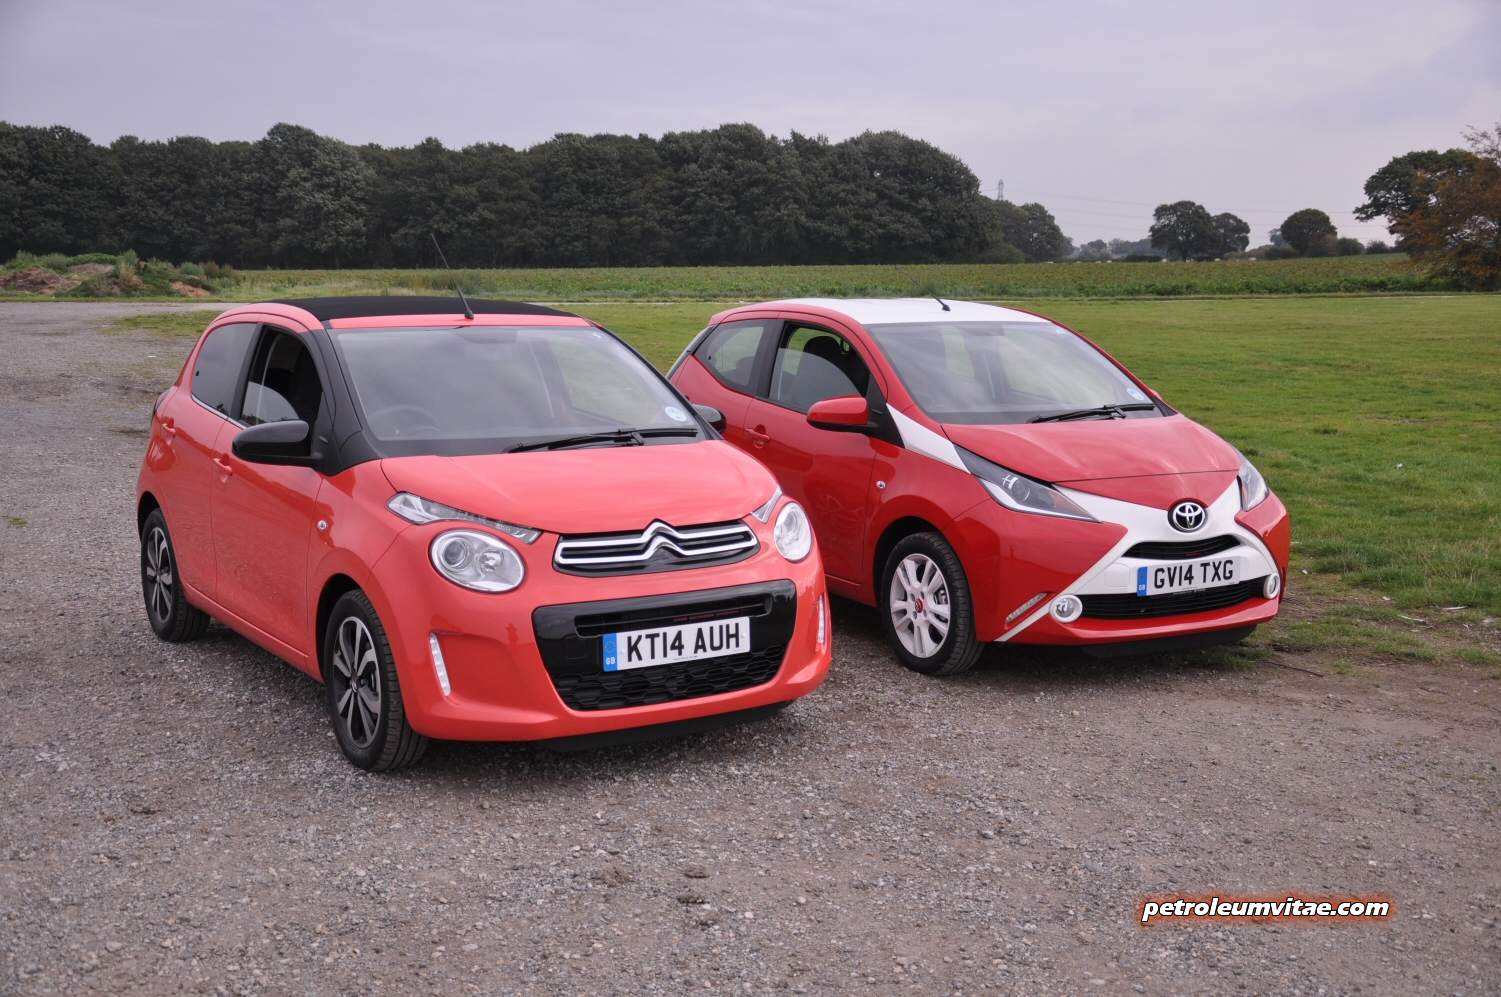 Citroen C1 Flair Review Meet Citroens New C1 And Hyundais New I10 Petroleum Vitae